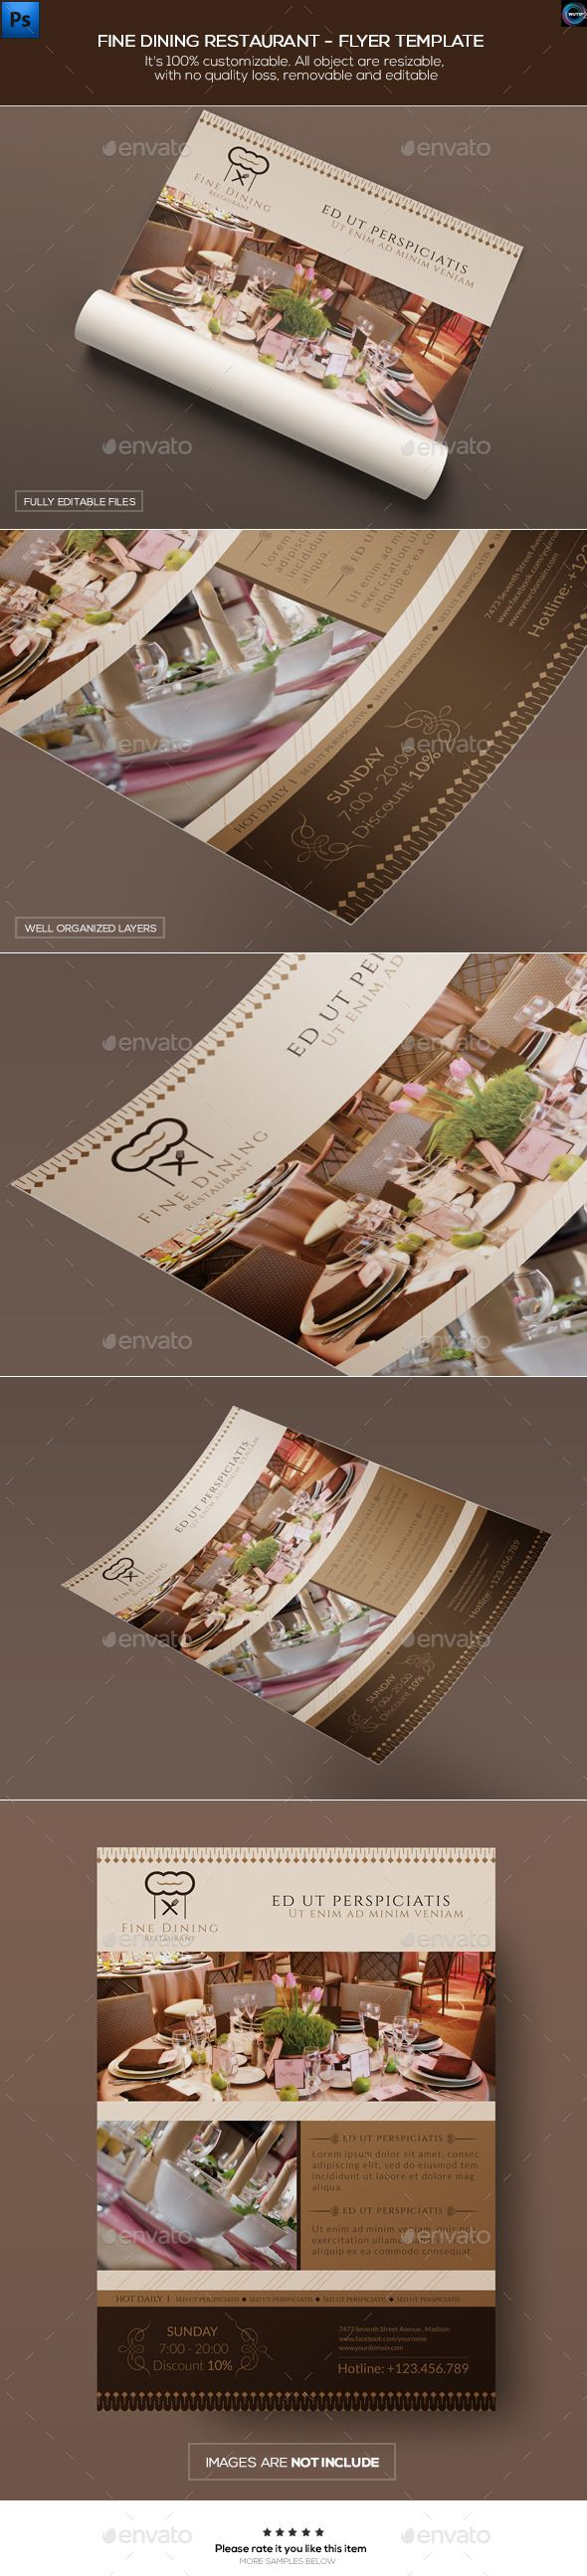 Fine Dining Restaurant - Flyer Template - Commerce Flyers